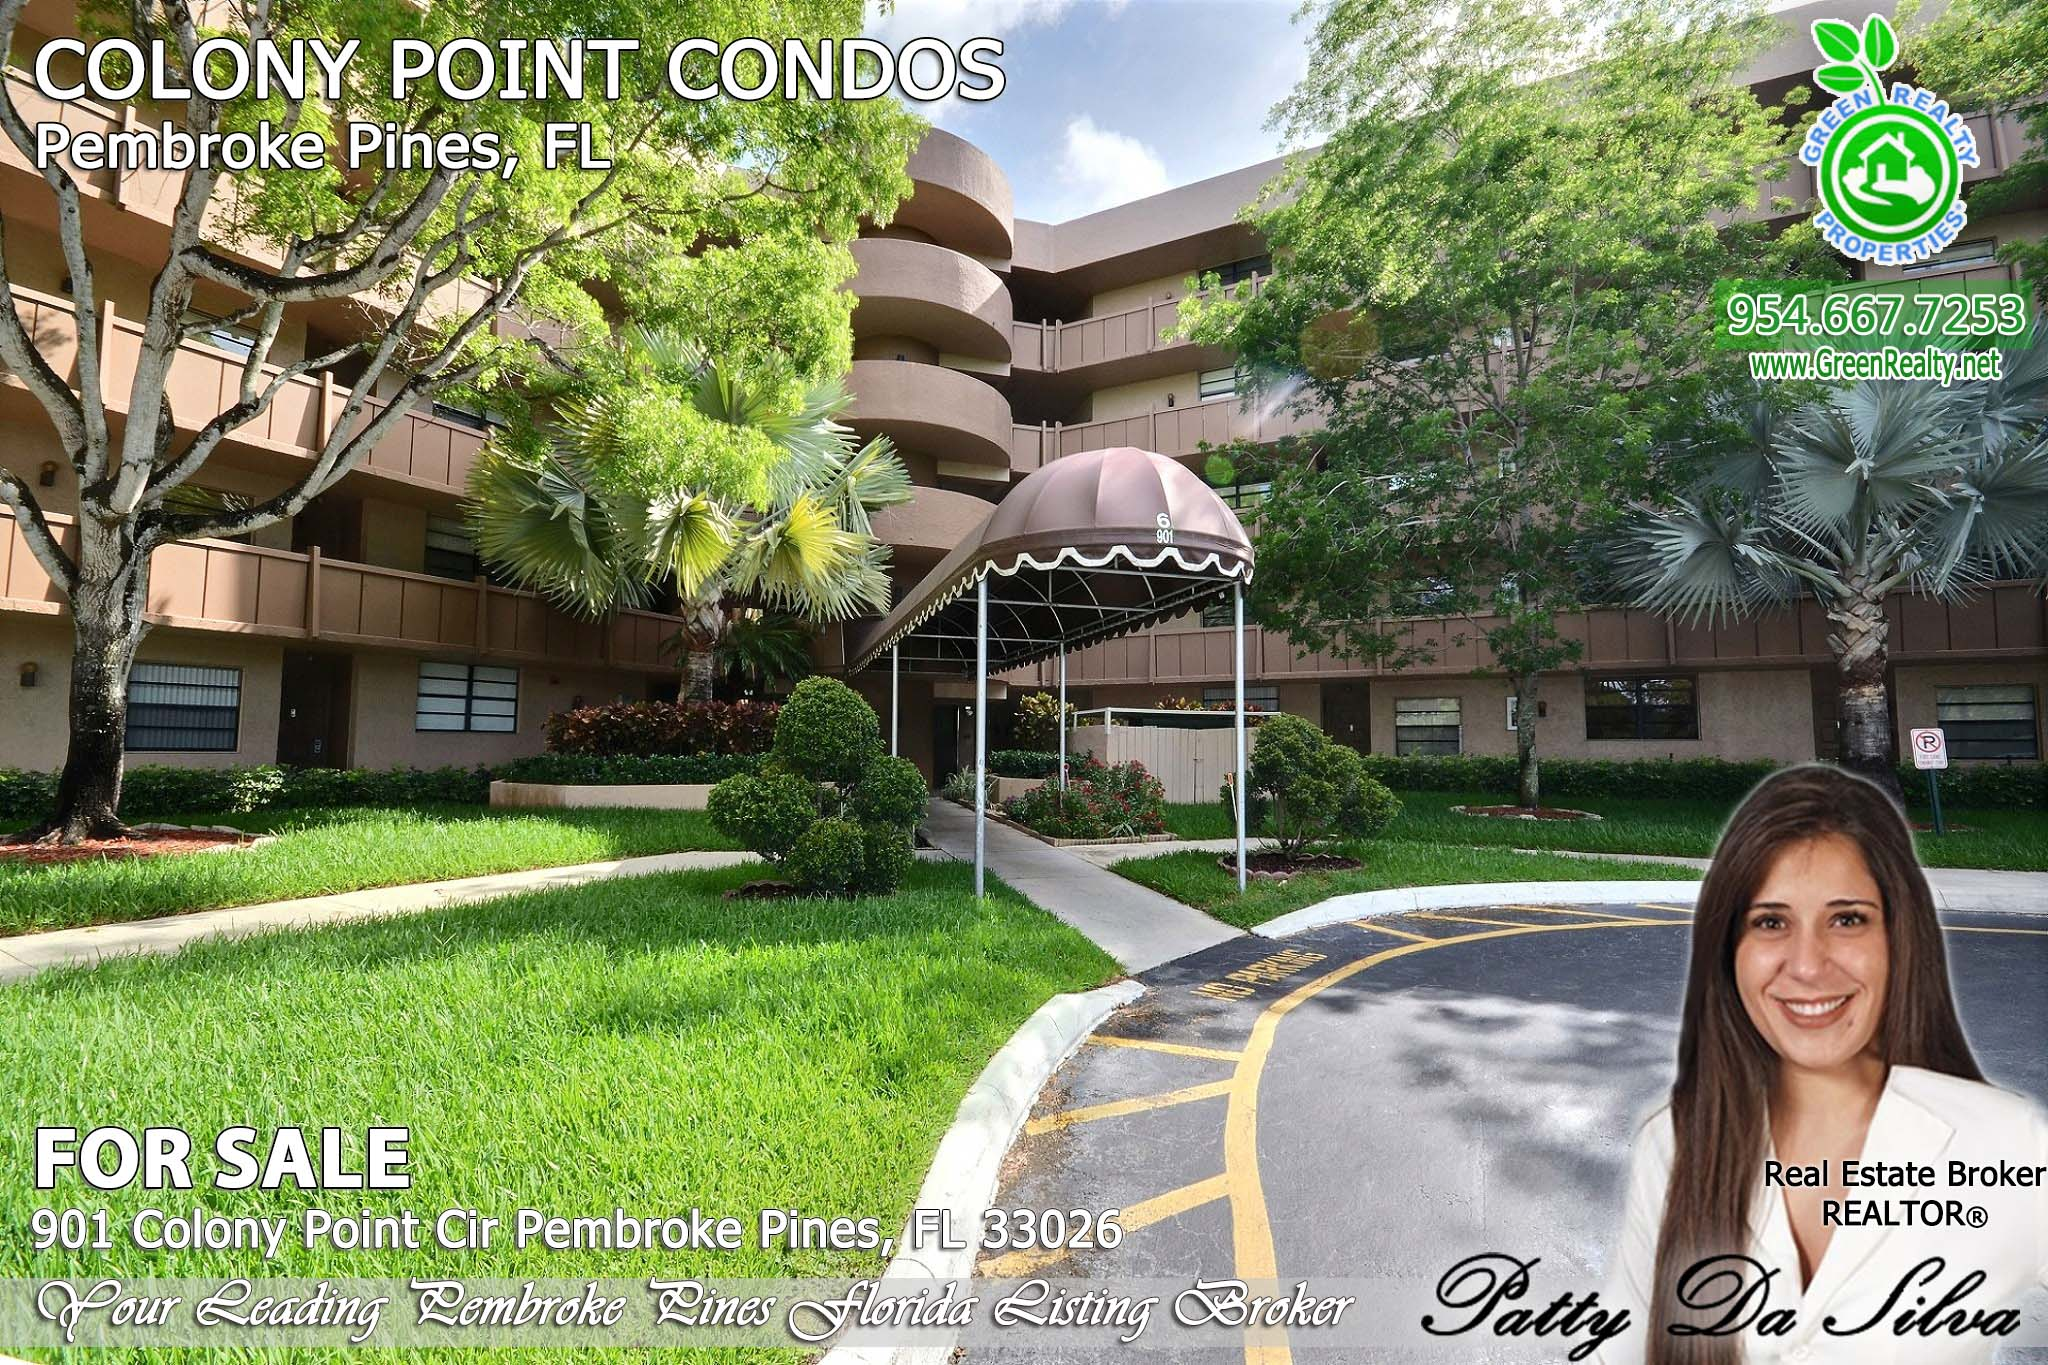 901 Colony Point Cir, Unit 112 - Pembroke Pines Homes For Sale (1)